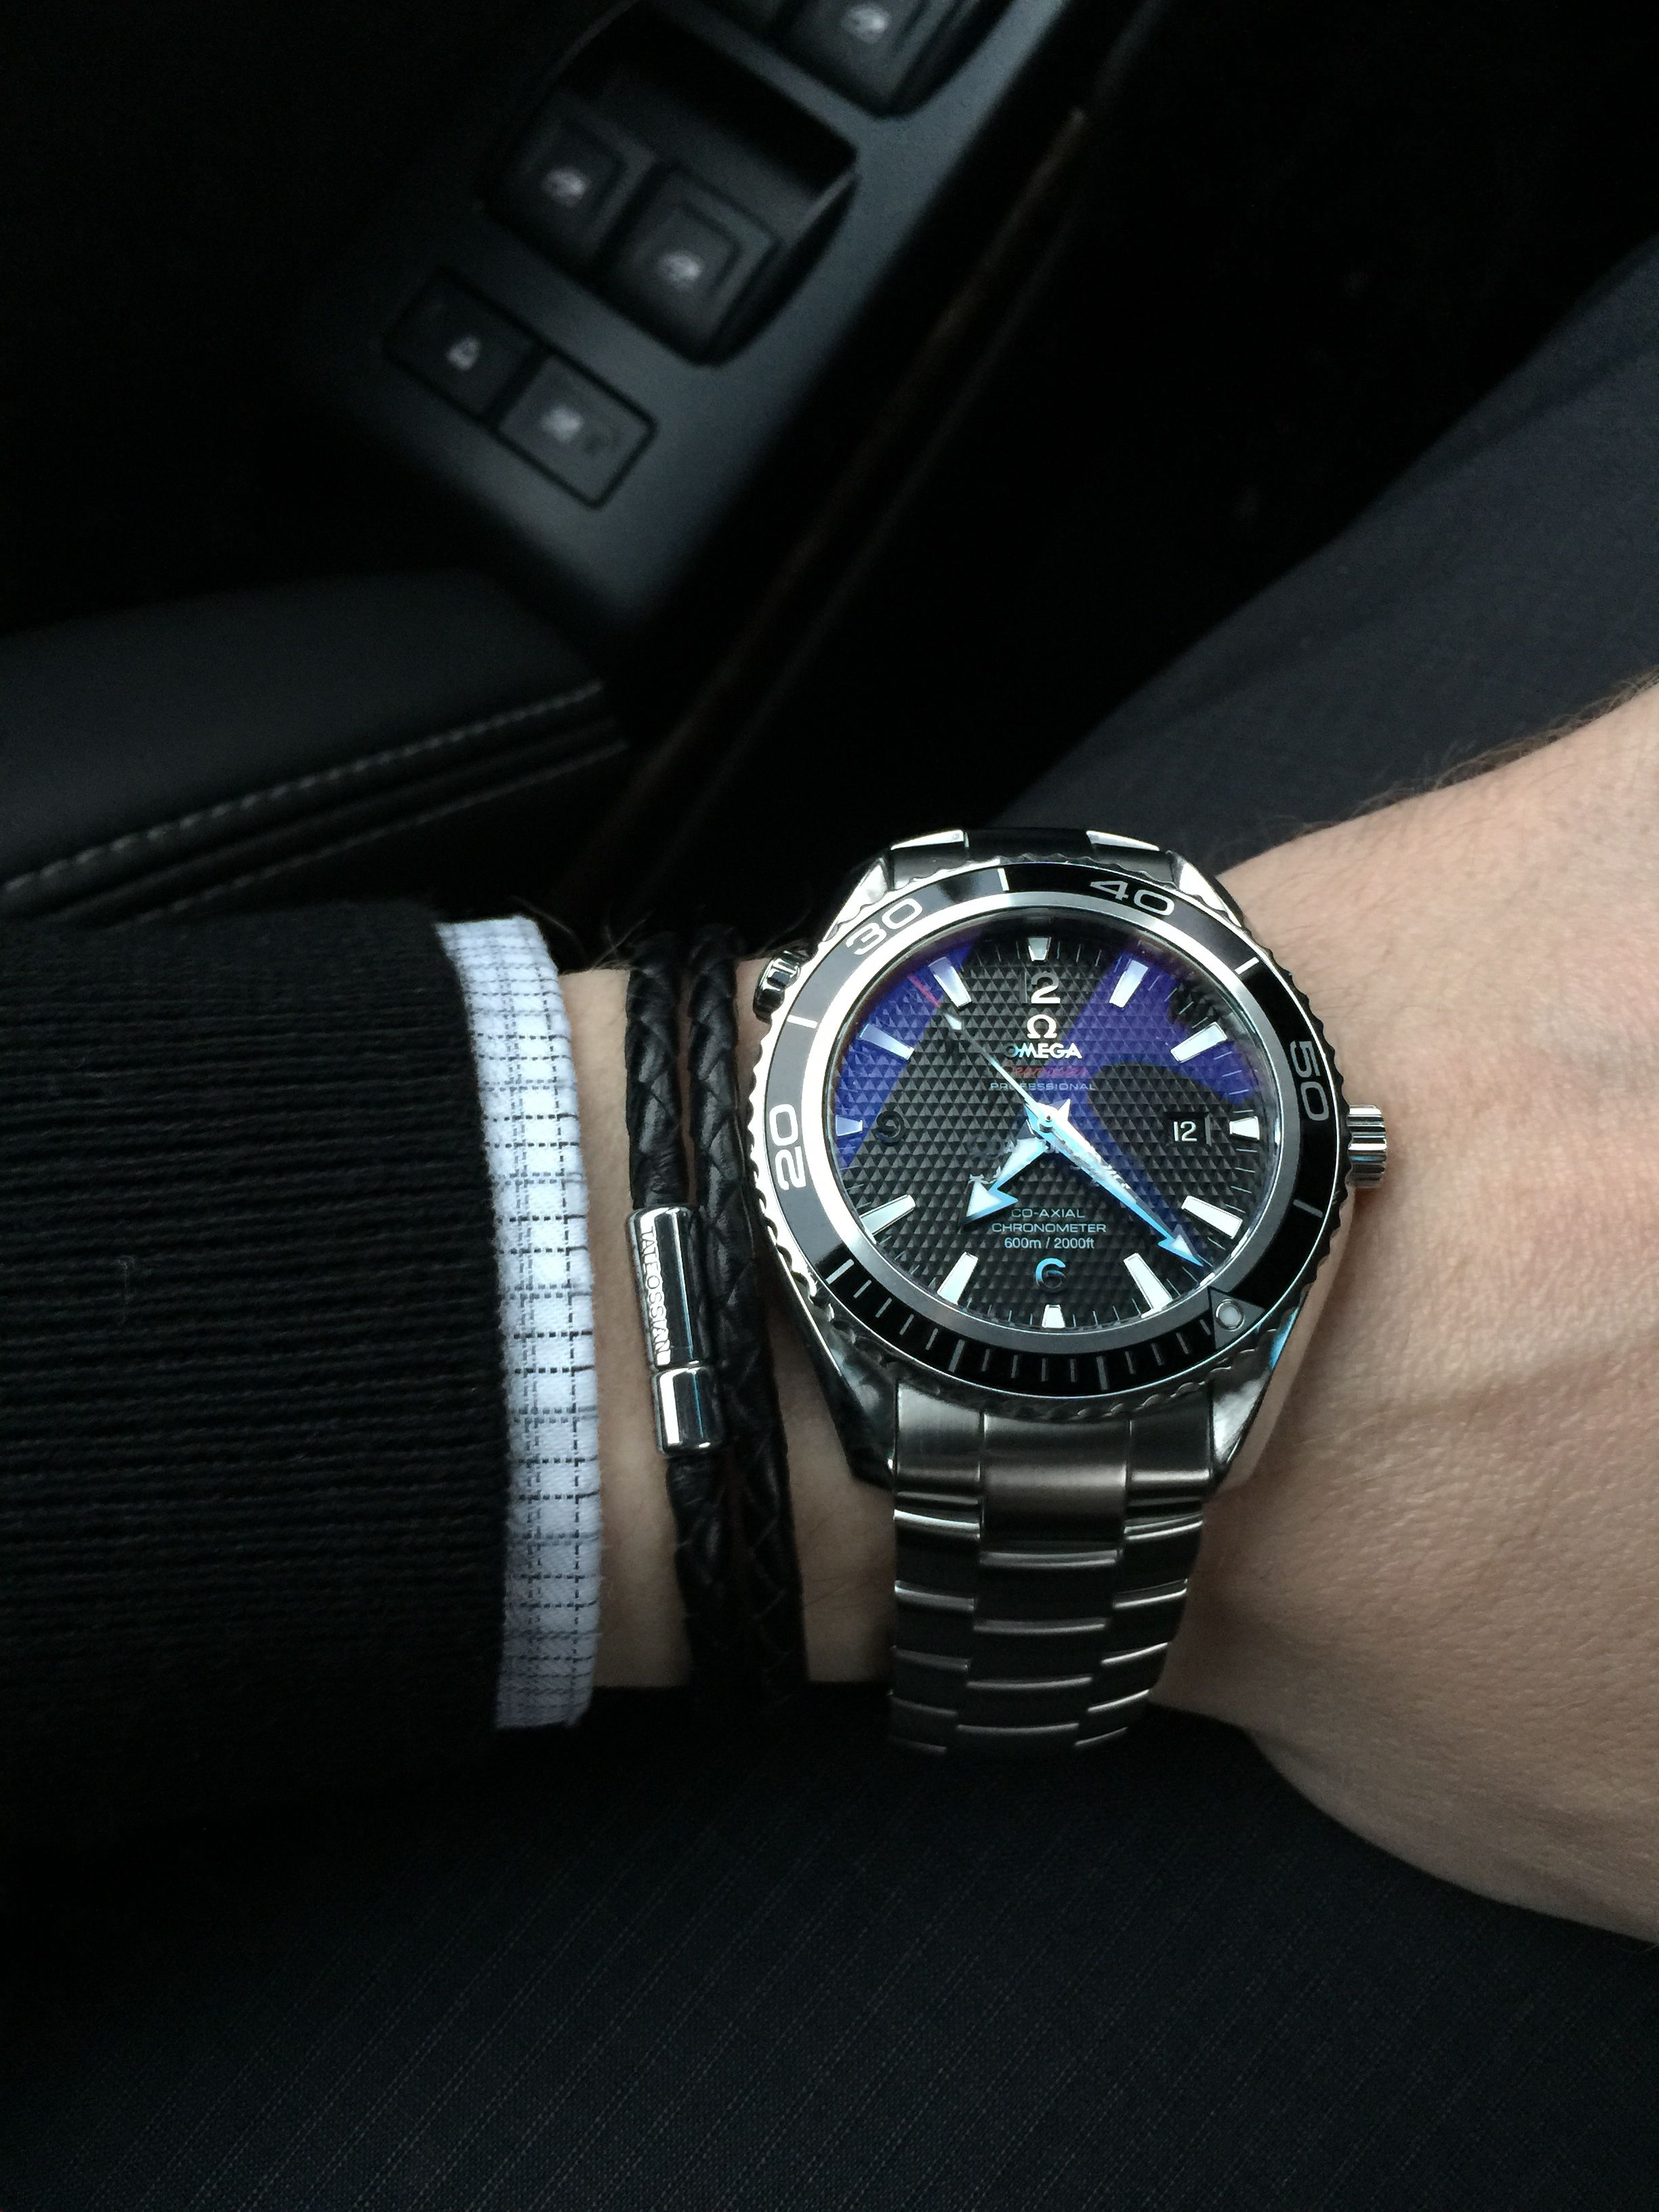 Omega Planet Ocean  Omega James Bond 007   Mens Watches and Bracelet Man's Jewellery and Accessories  Fashion # Men watches and bracelet